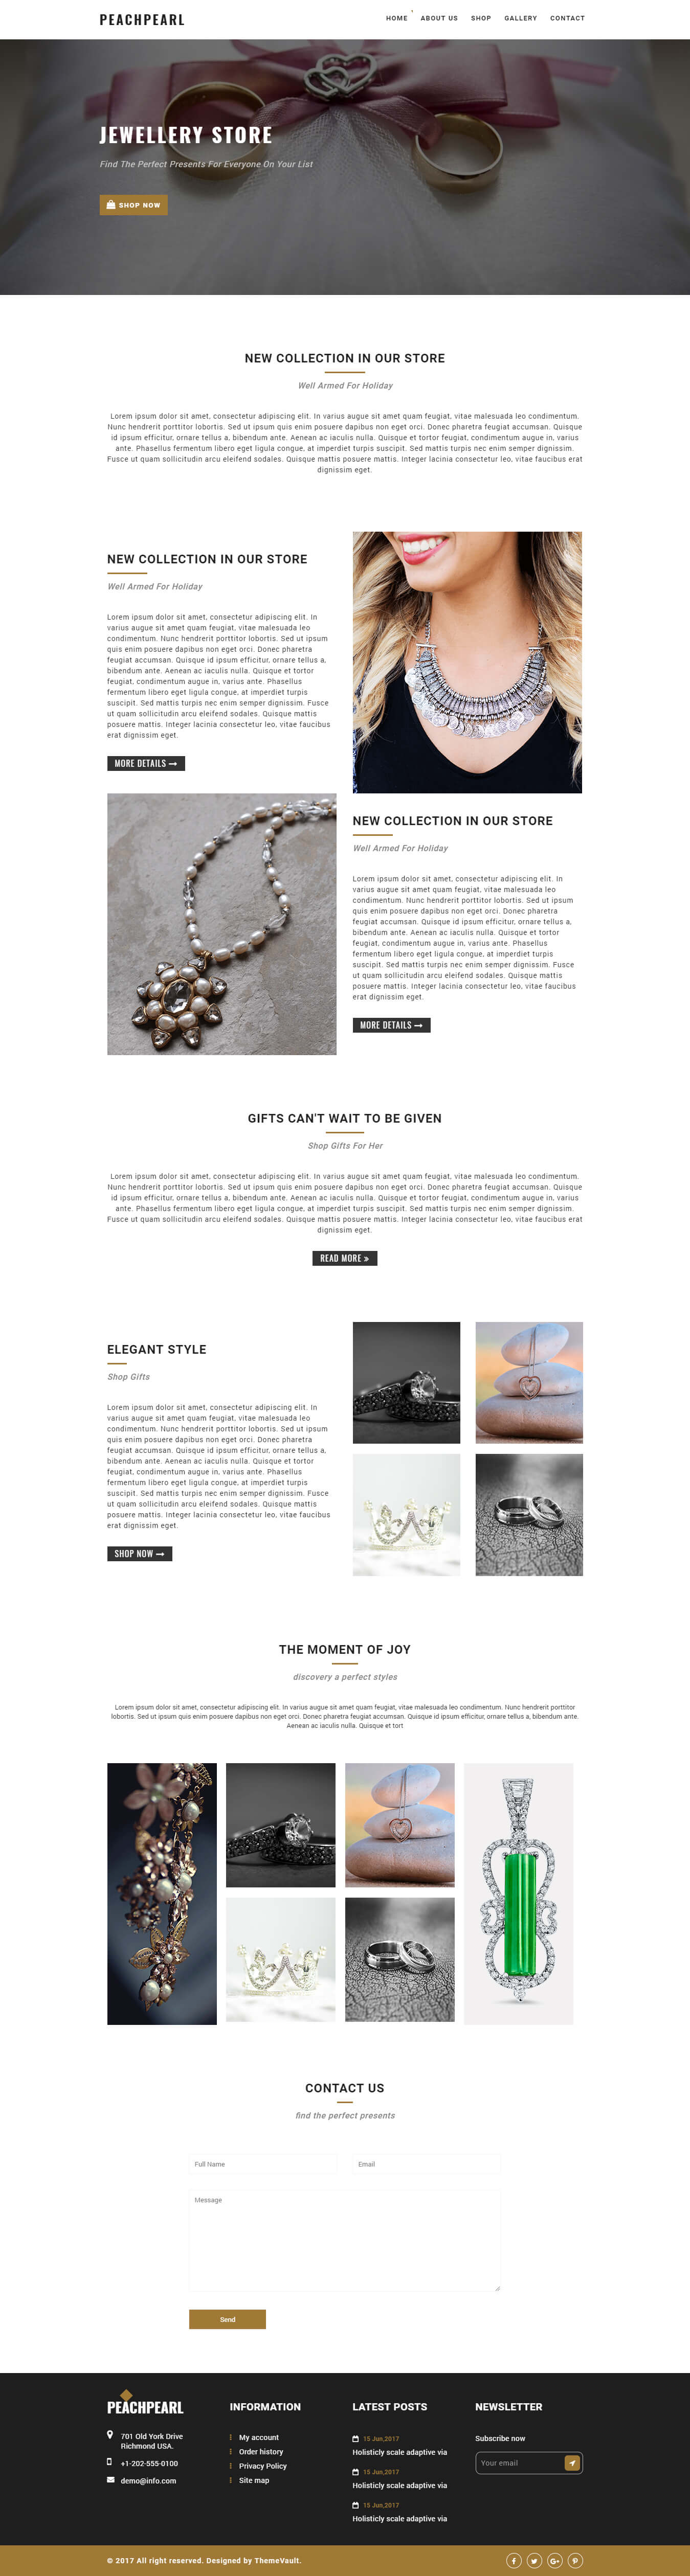 Peachpearl – Responsive Best Email Newsletter Templates | ThemeVault